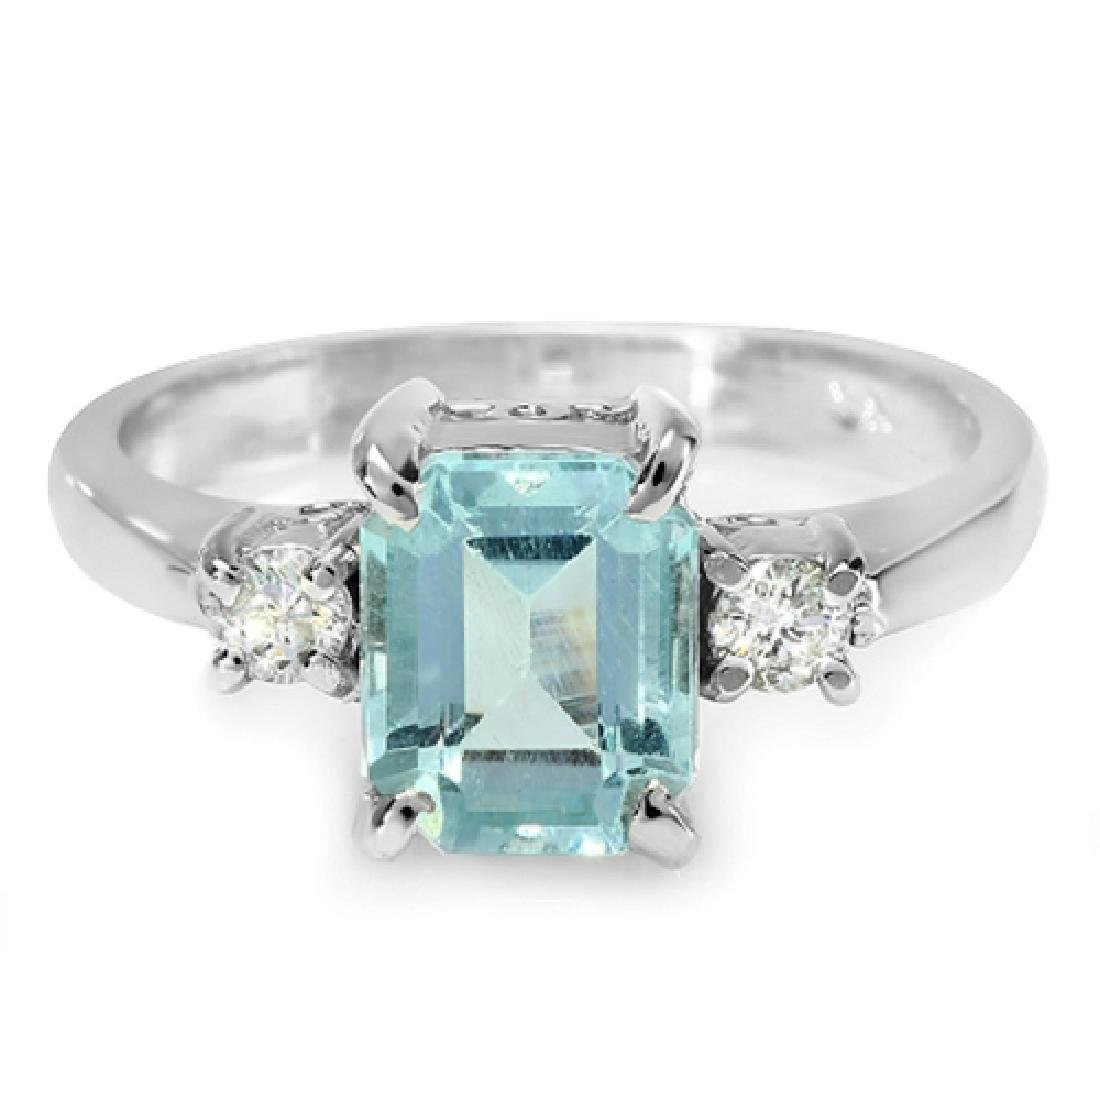 2.10 Carat Natural Aquamarine 18K Solid White Gold